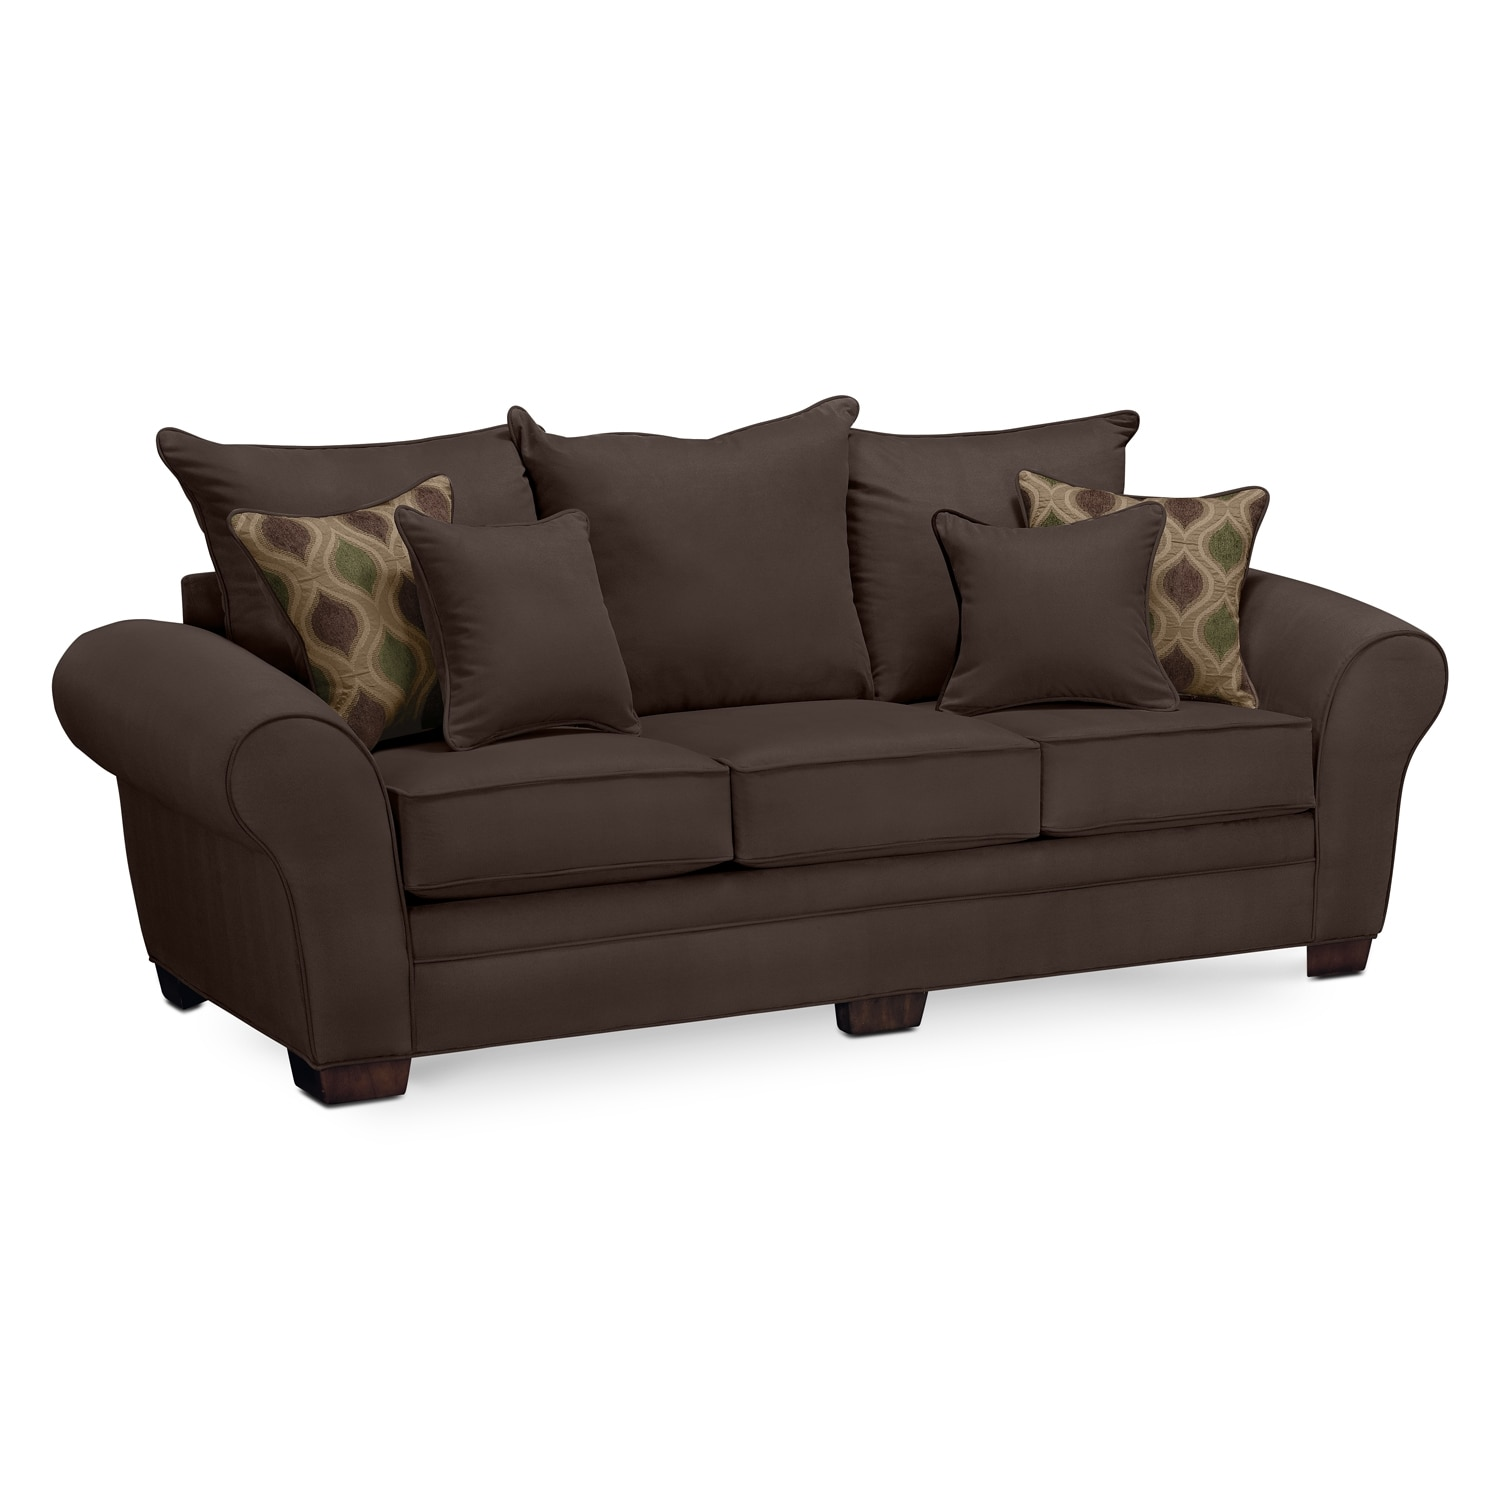 rendezvous sofa chocolate american signature furniture. Black Bedroom Furniture Sets. Home Design Ideas